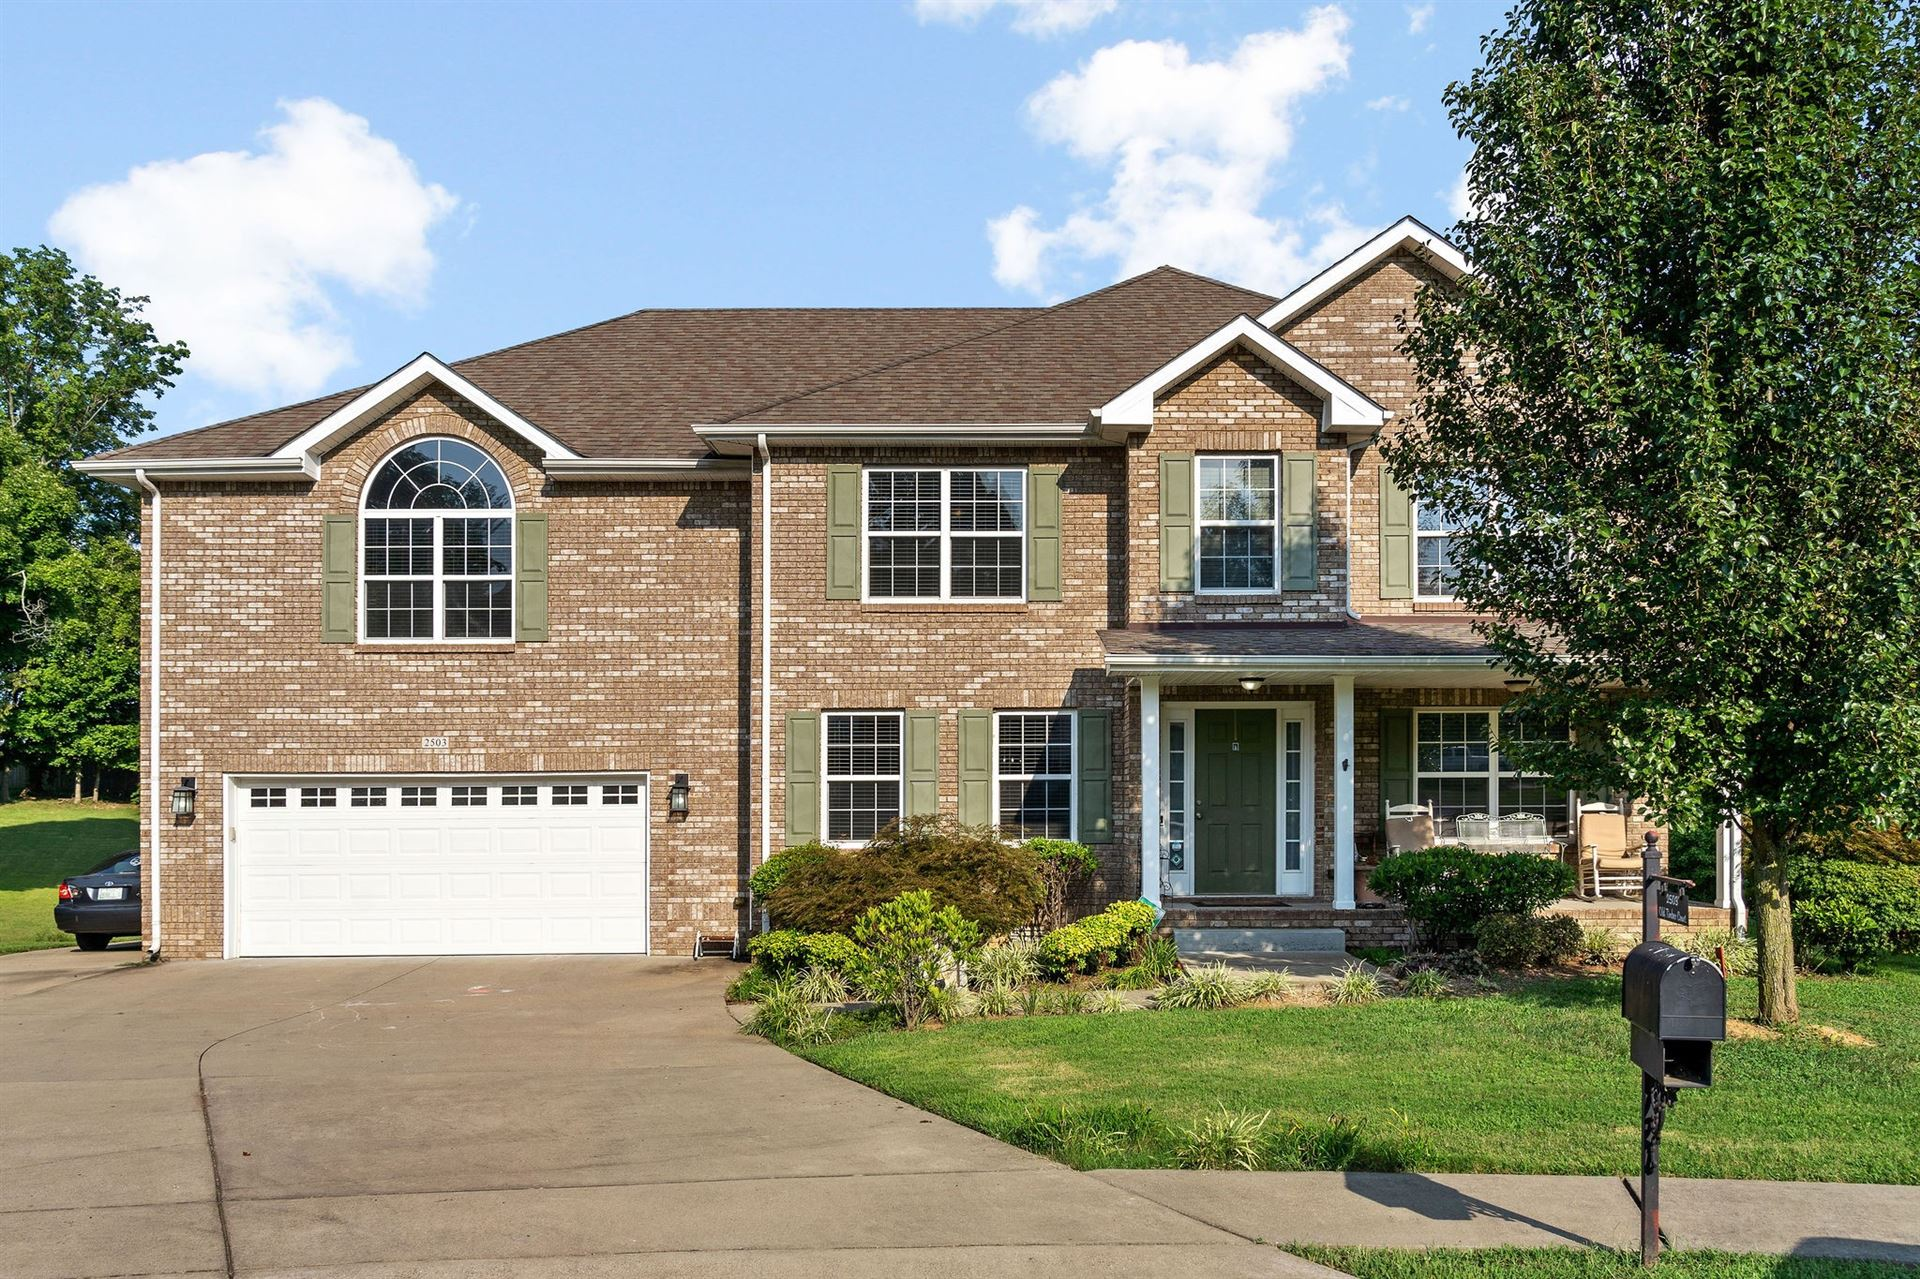 2503 Old Timber Ct, Clarksville, TN 37042 - MLS#: 2286589